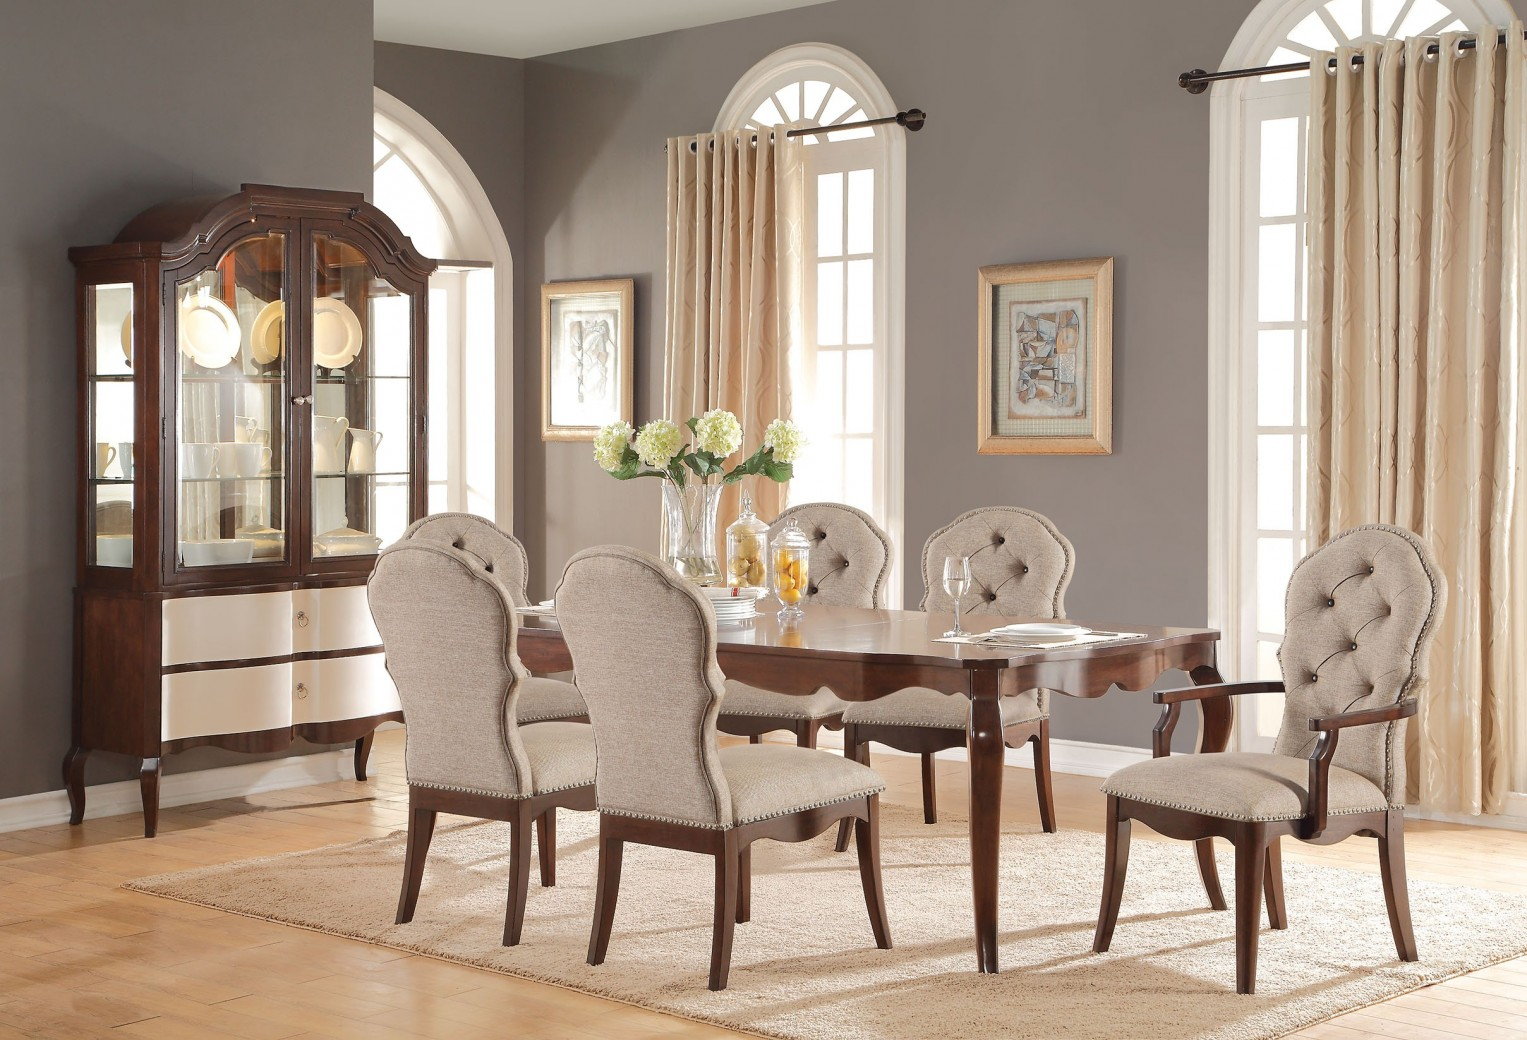 61980 Acme Dining Set Mathias Collection Walnut Finish / Beige Fabric